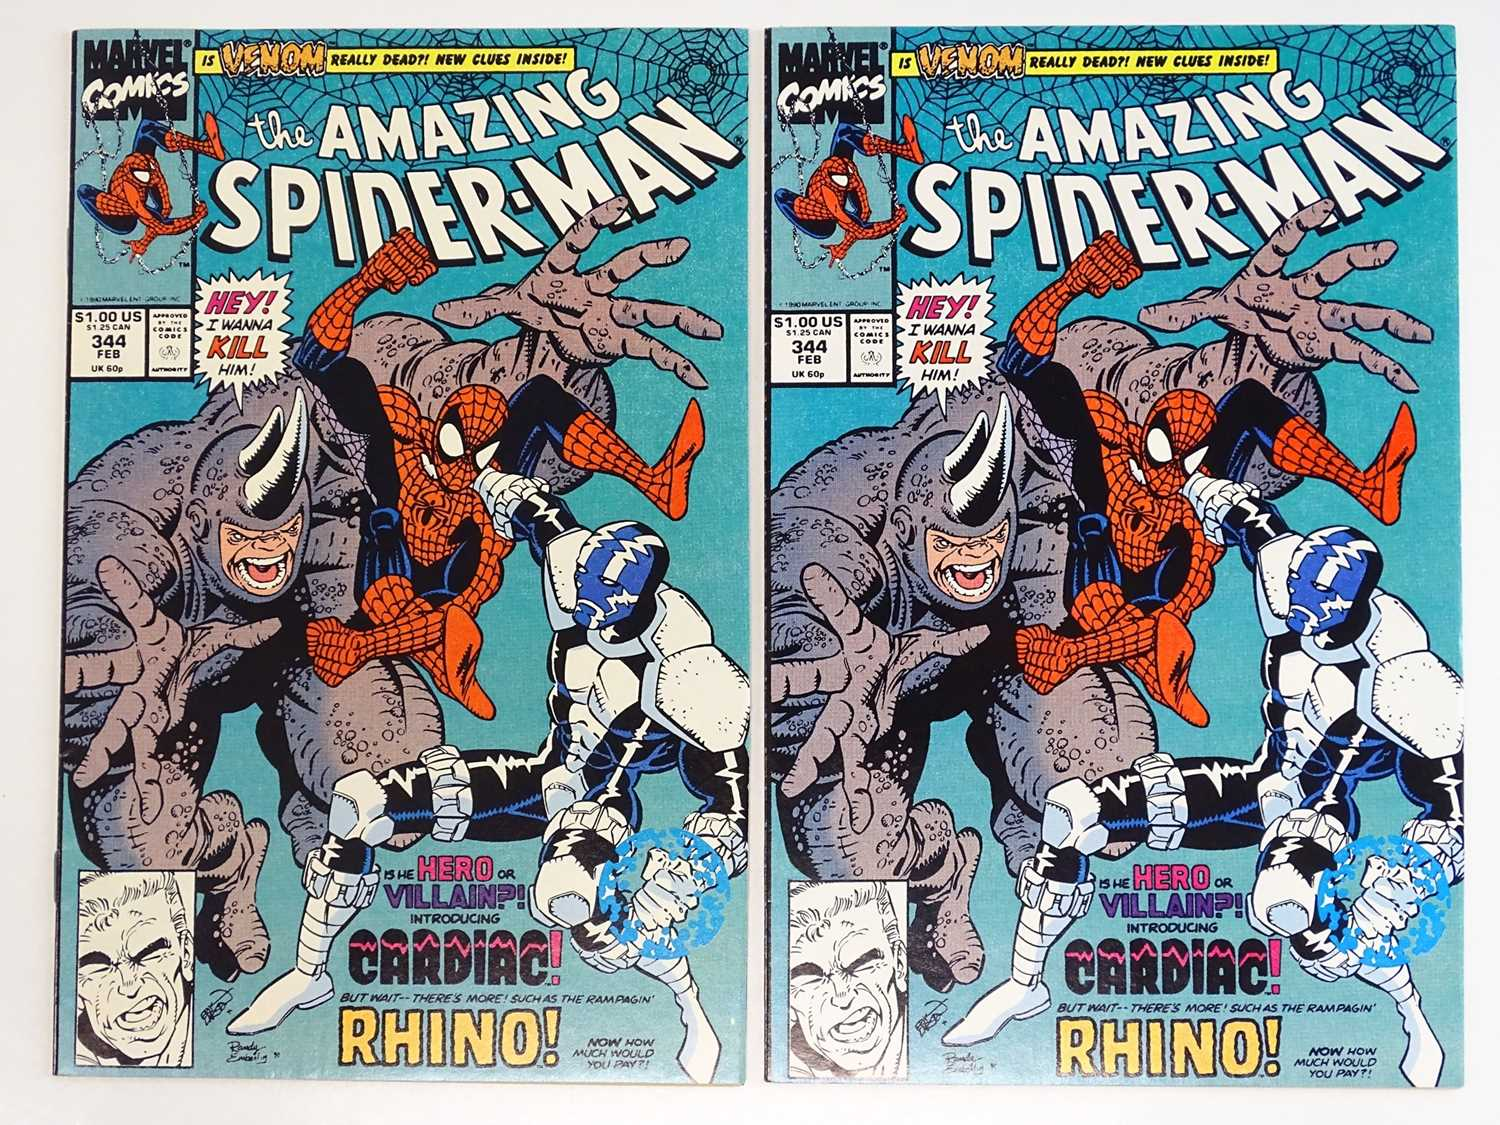 AMAZING SPIDER-MAN #344 - (1988 - MARVEL) - 2 x Issues of #344 - First appearance of Cletus